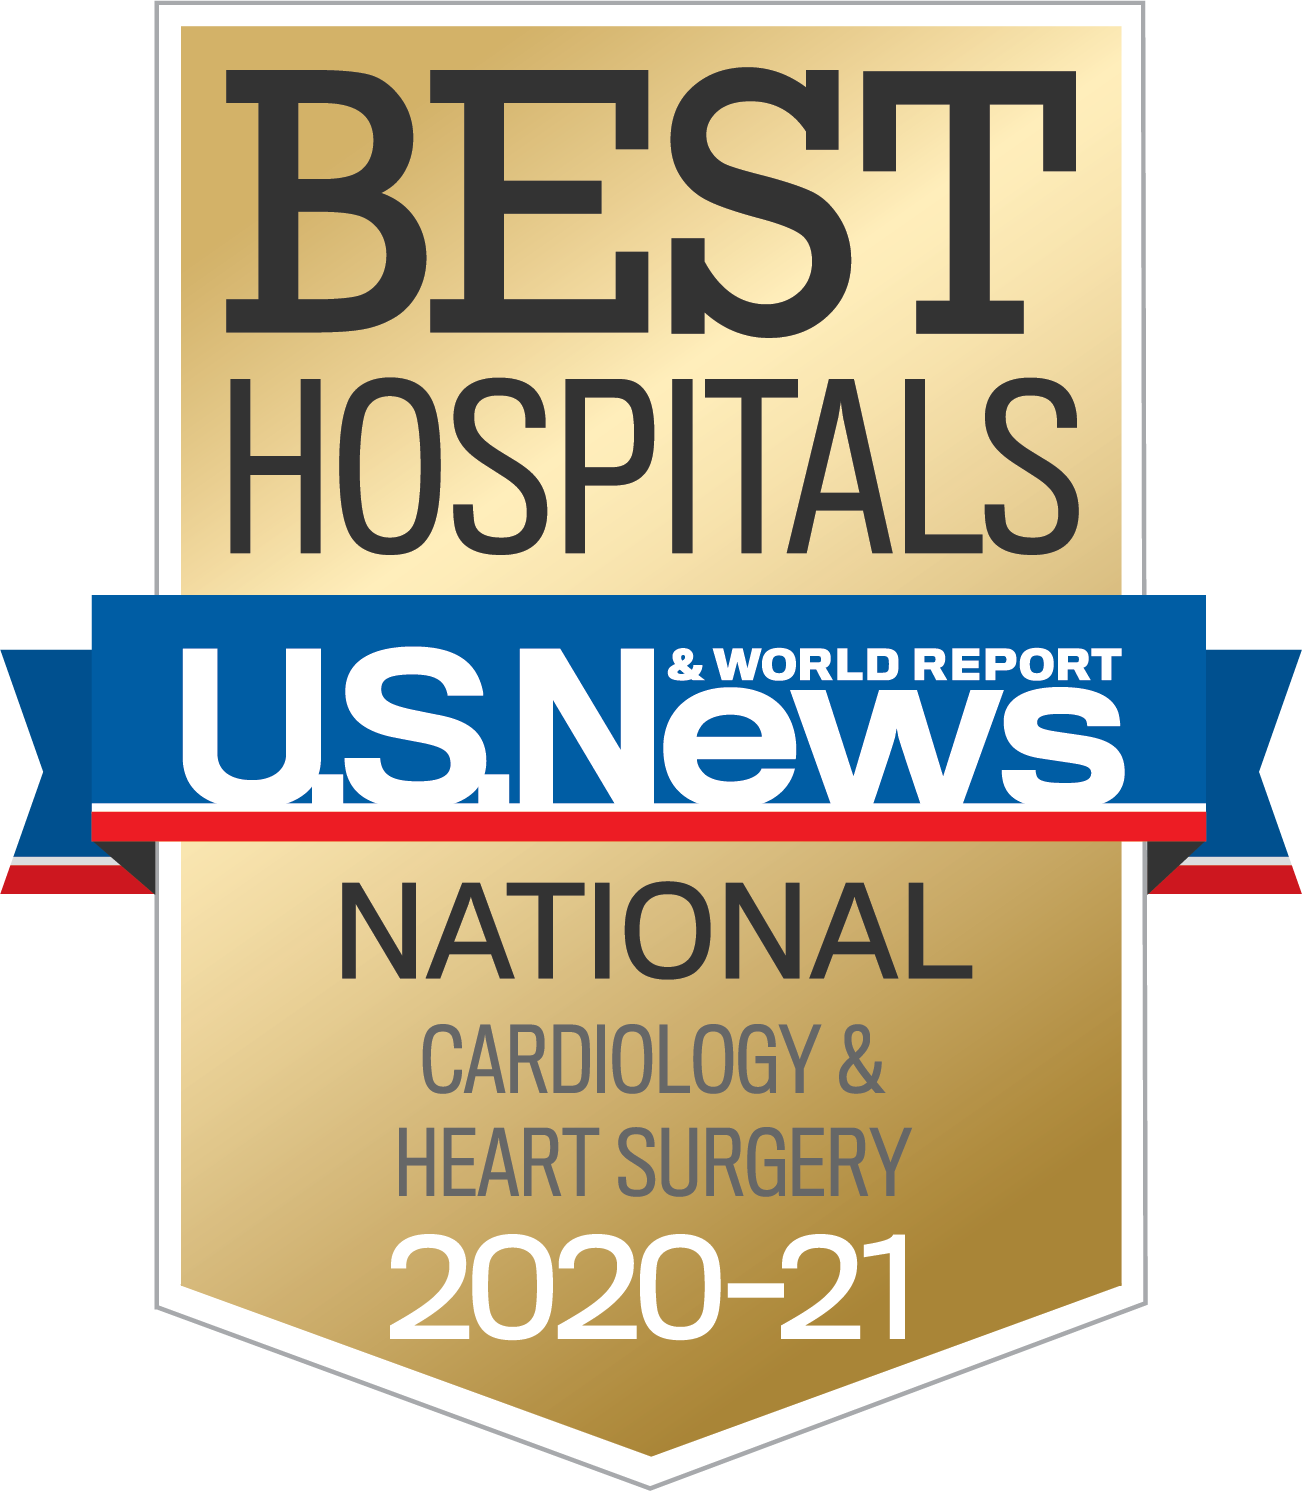 2020 Best Hospitals - Cardiology and Heart Surgery